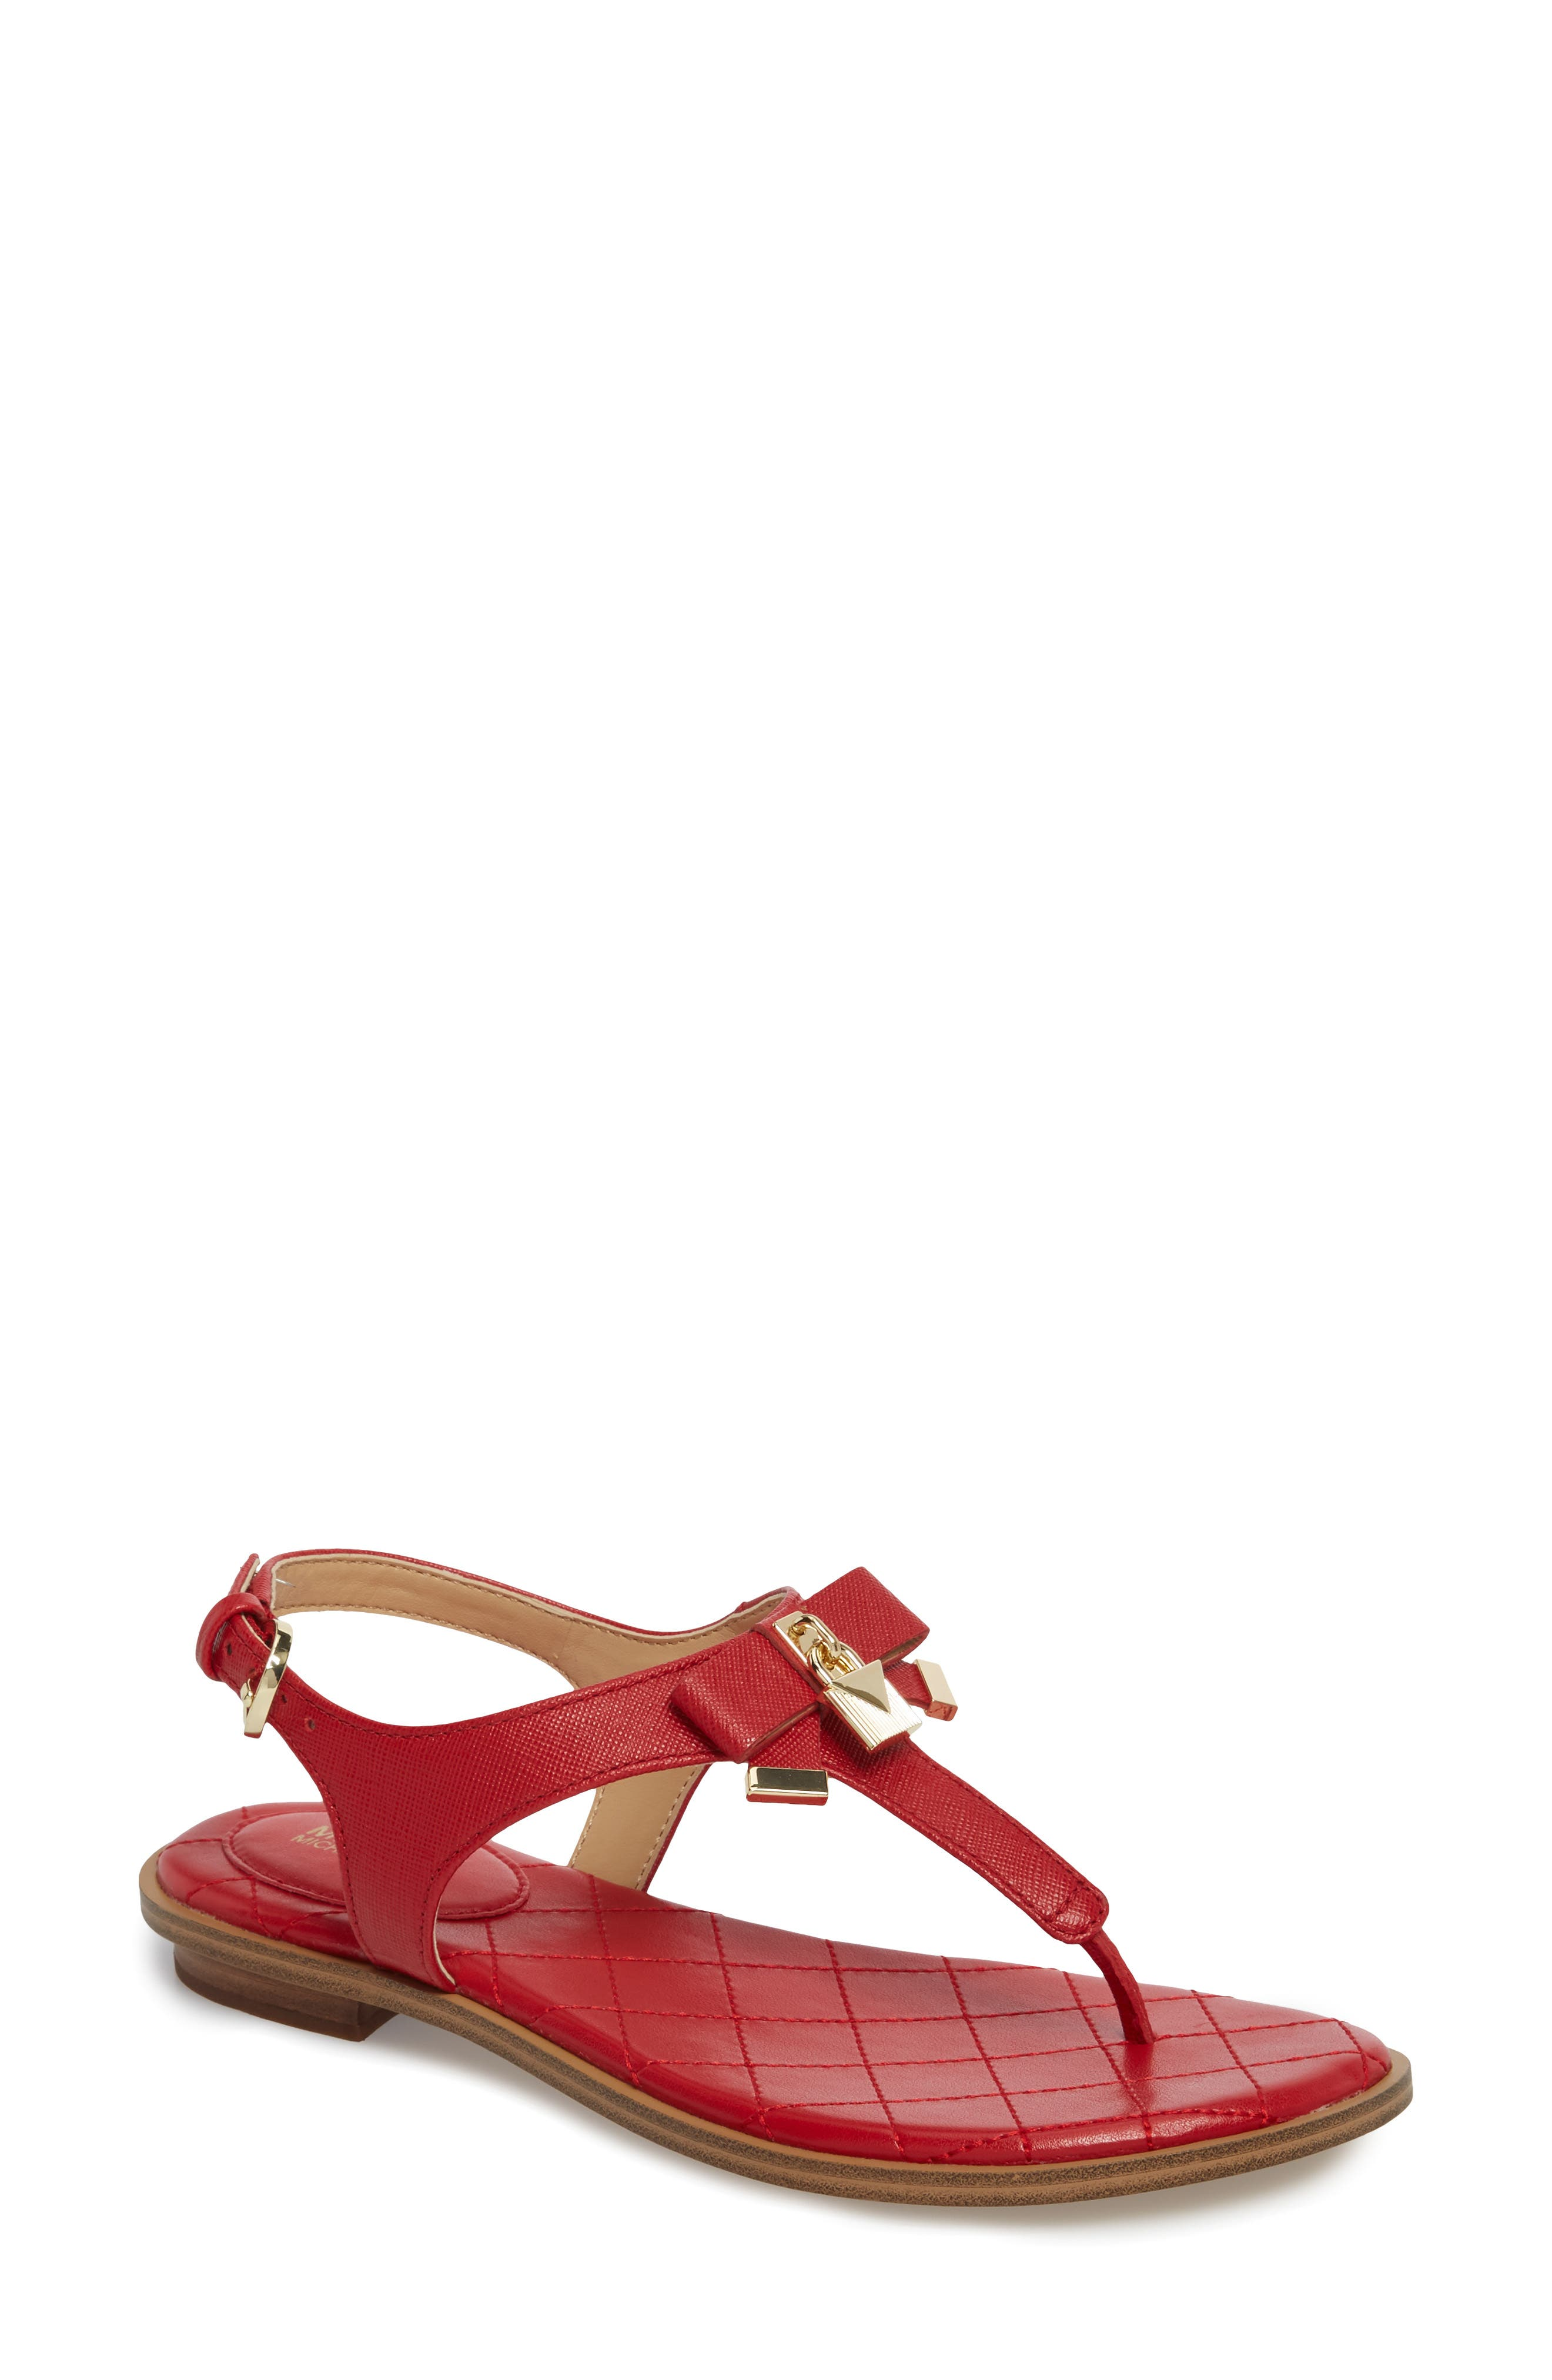 Alice Sandal,                             Main thumbnail 1, color,                             Bright Red